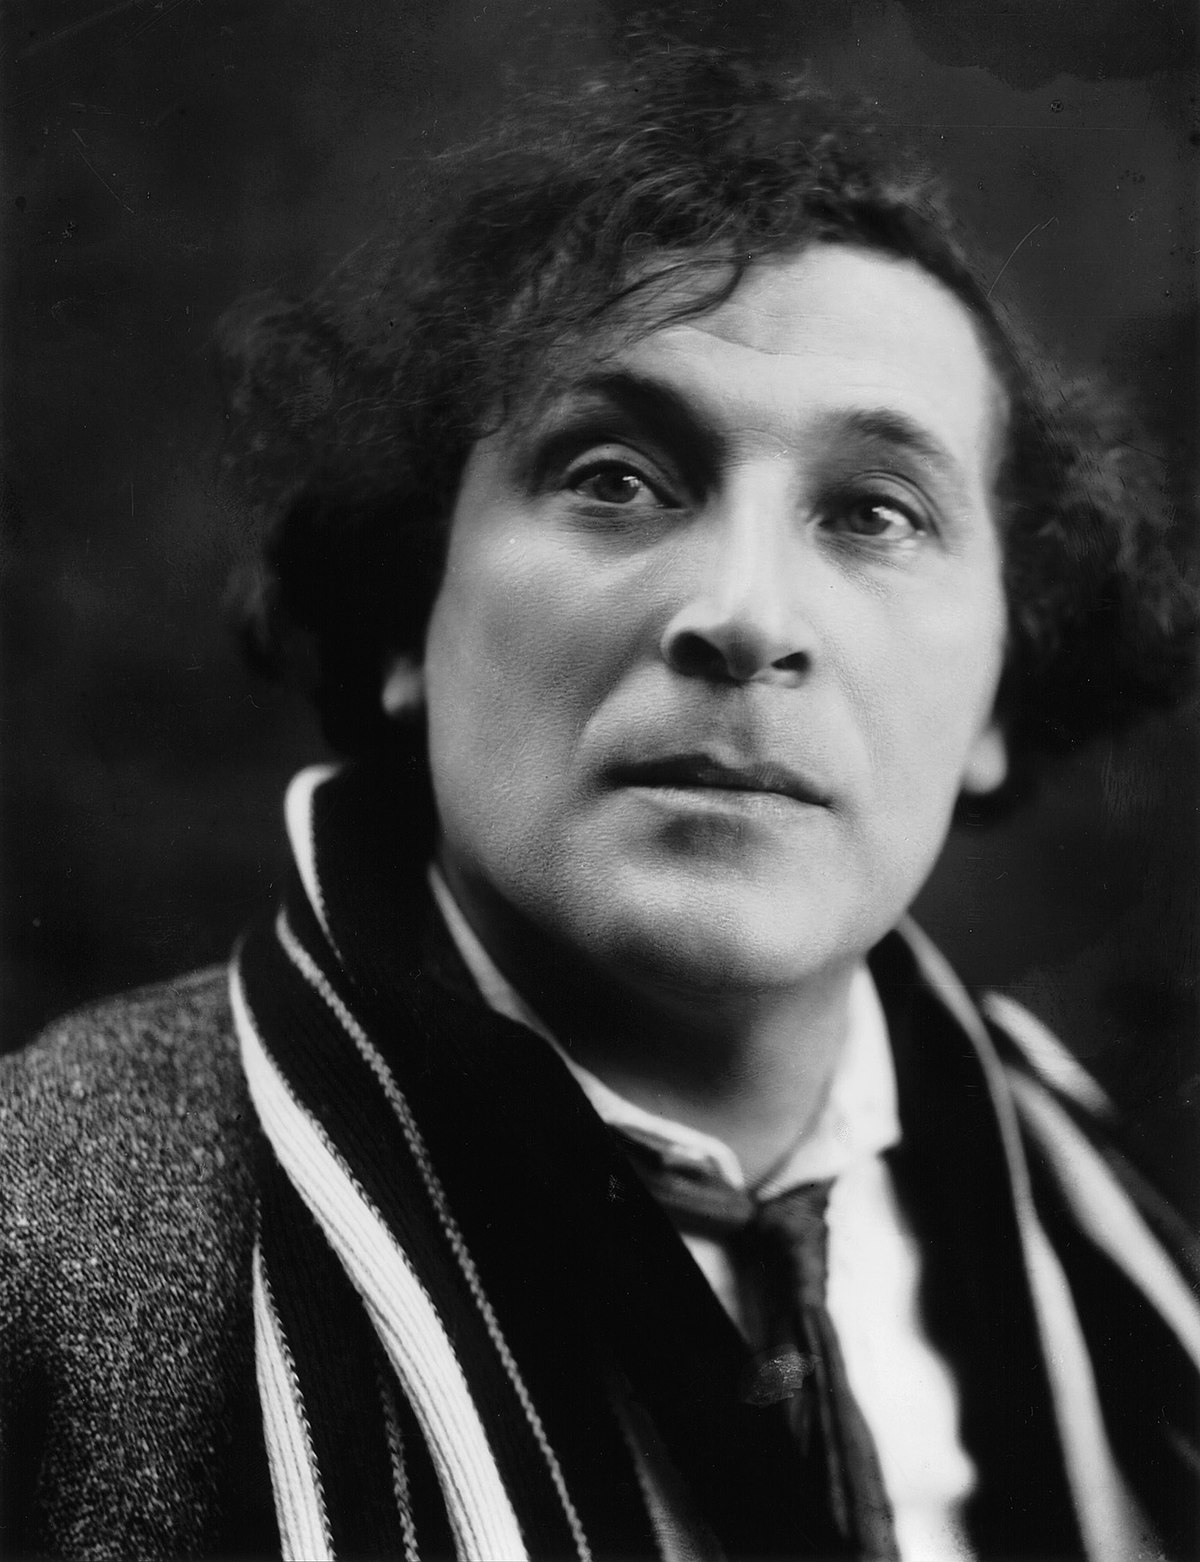 marc chagall happy birthday : marc chagall vitraux zurich :  marc chagall images en 2020/2021